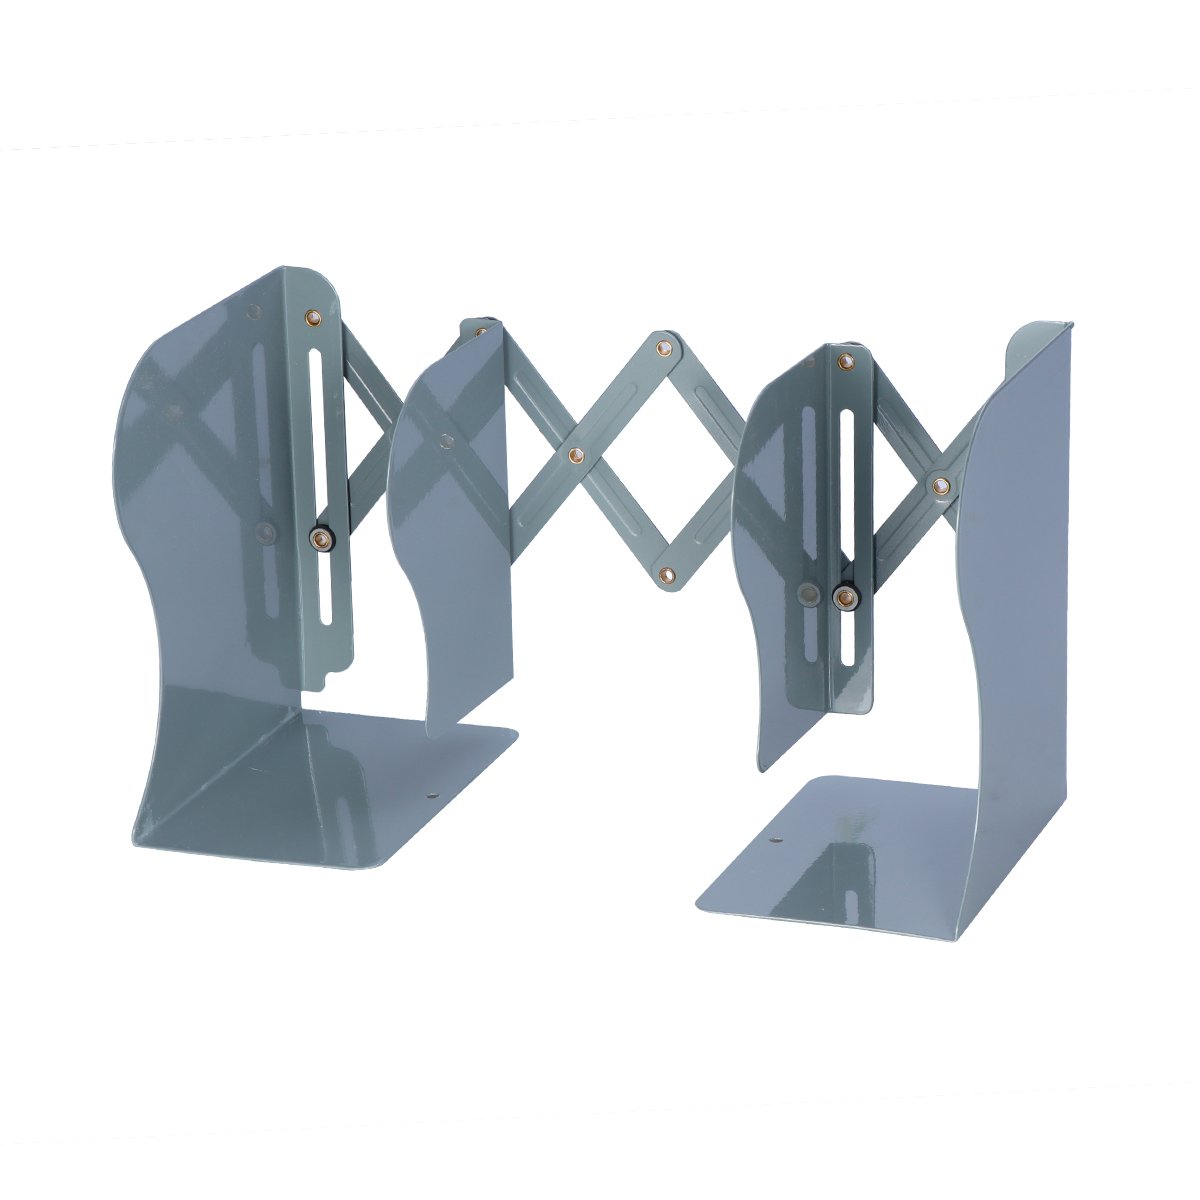 WINOMO Adjustable Metal Bookend Heavy Duty and Decorative Modern Design (Grey)